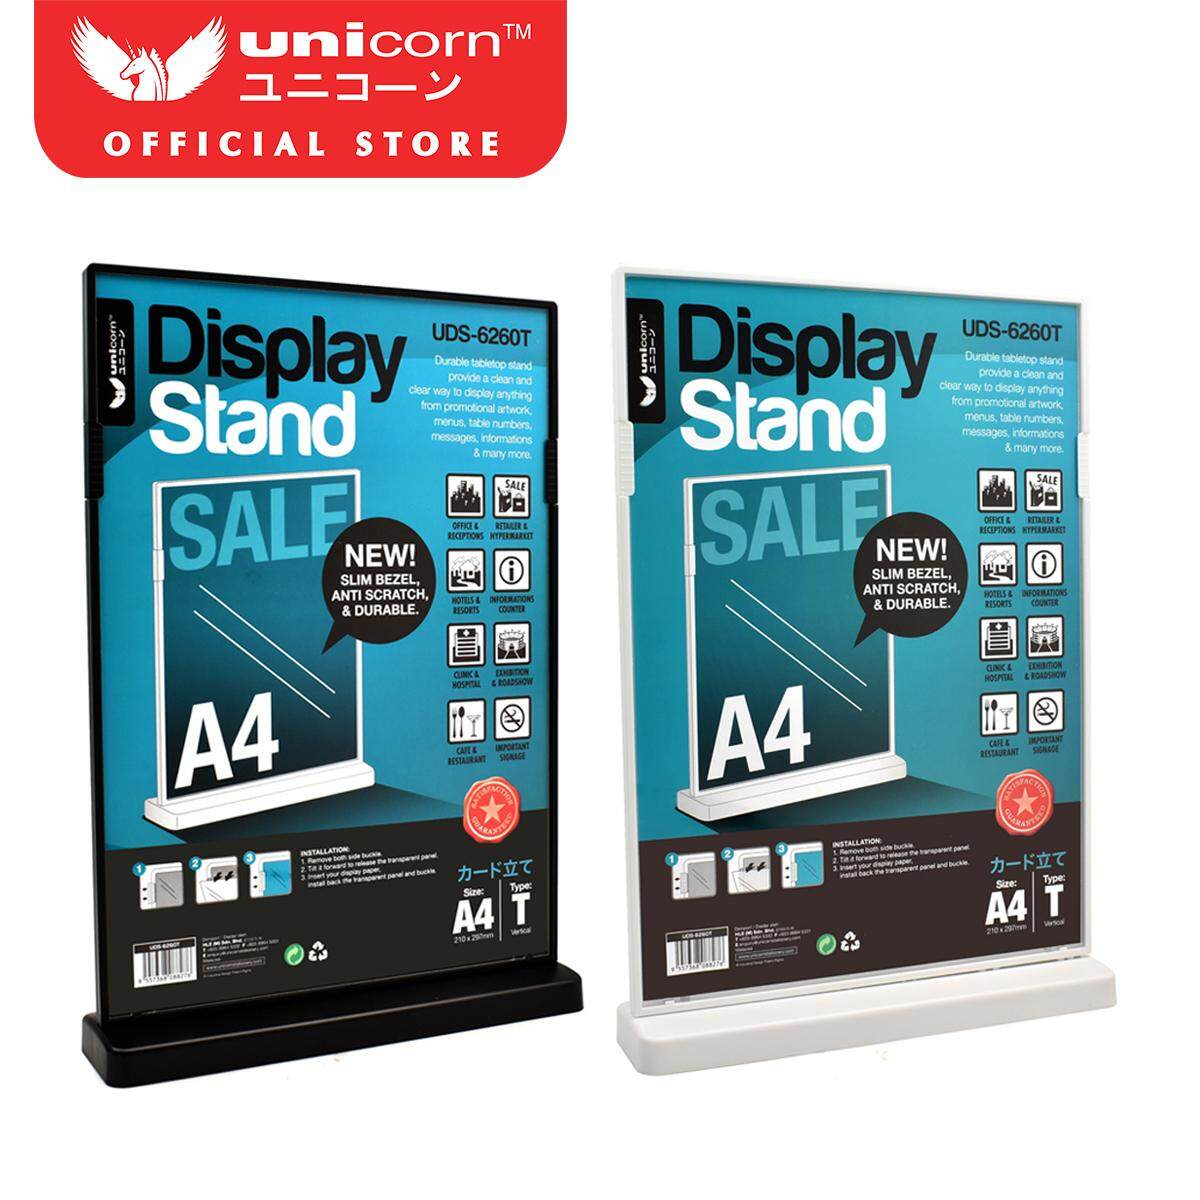 Unicorn A5 T-Shaped Display Stand 148x210mm Uds-6261t (black/white) By Unicorn.